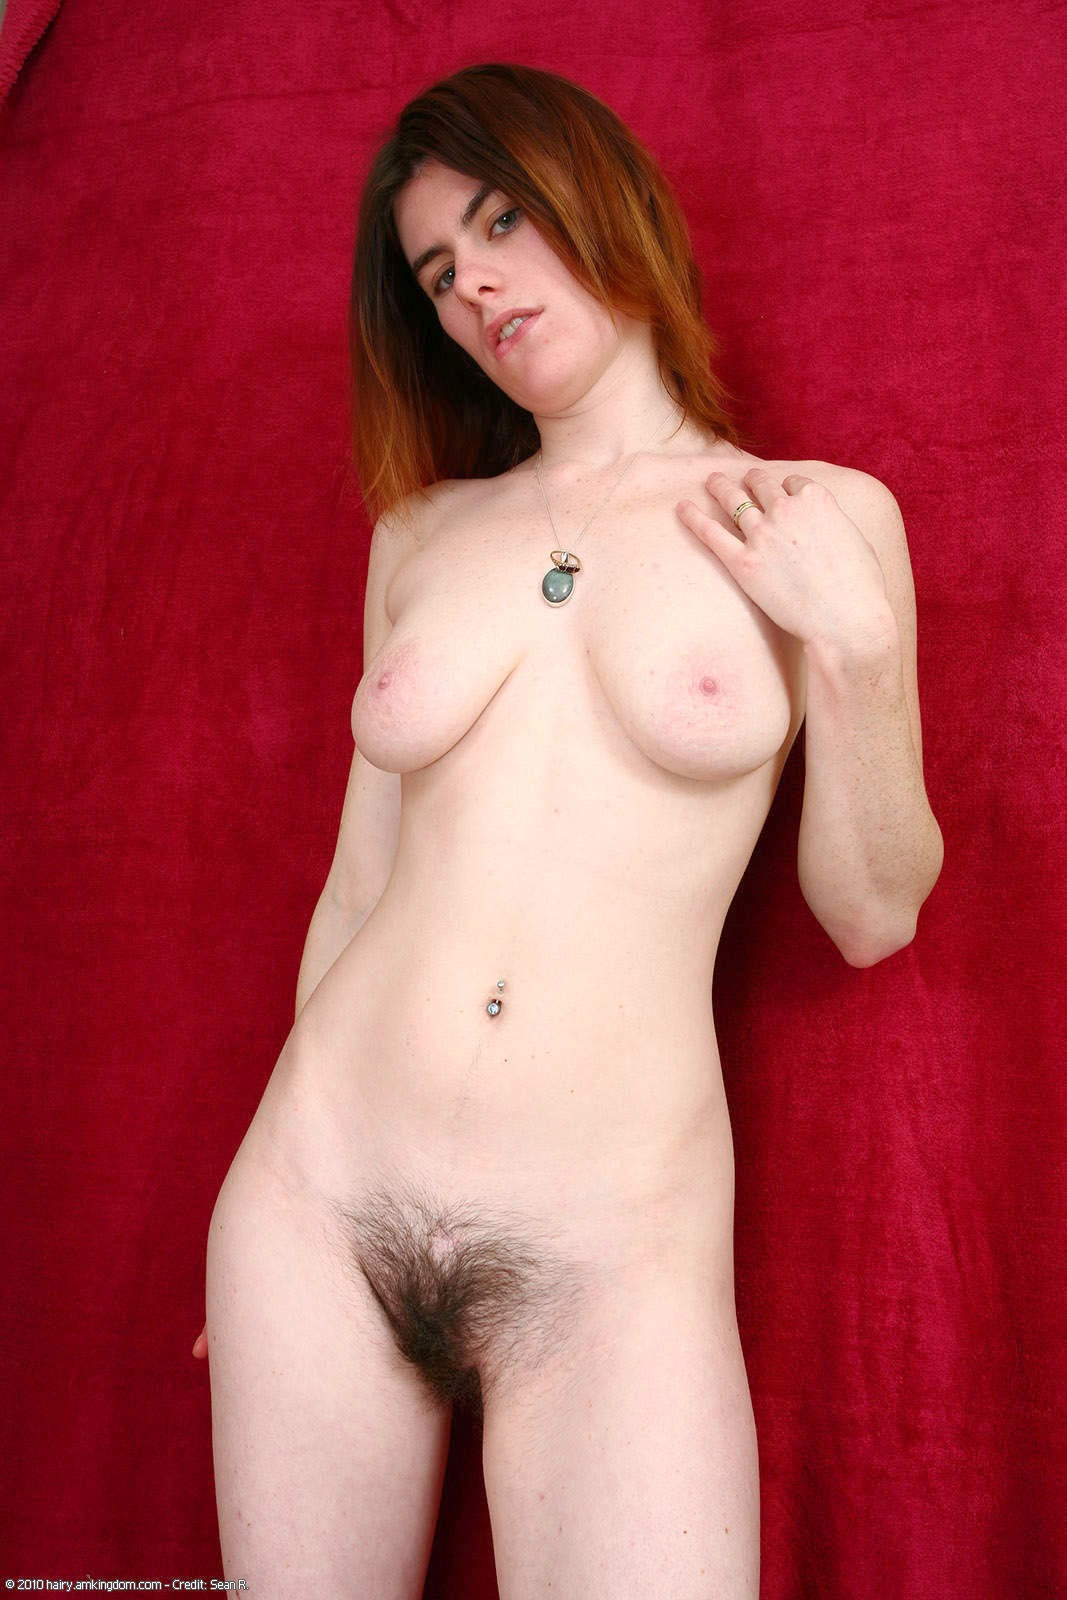 Next! skinny hairy redhead amature LOOKS SOO INNOCENT